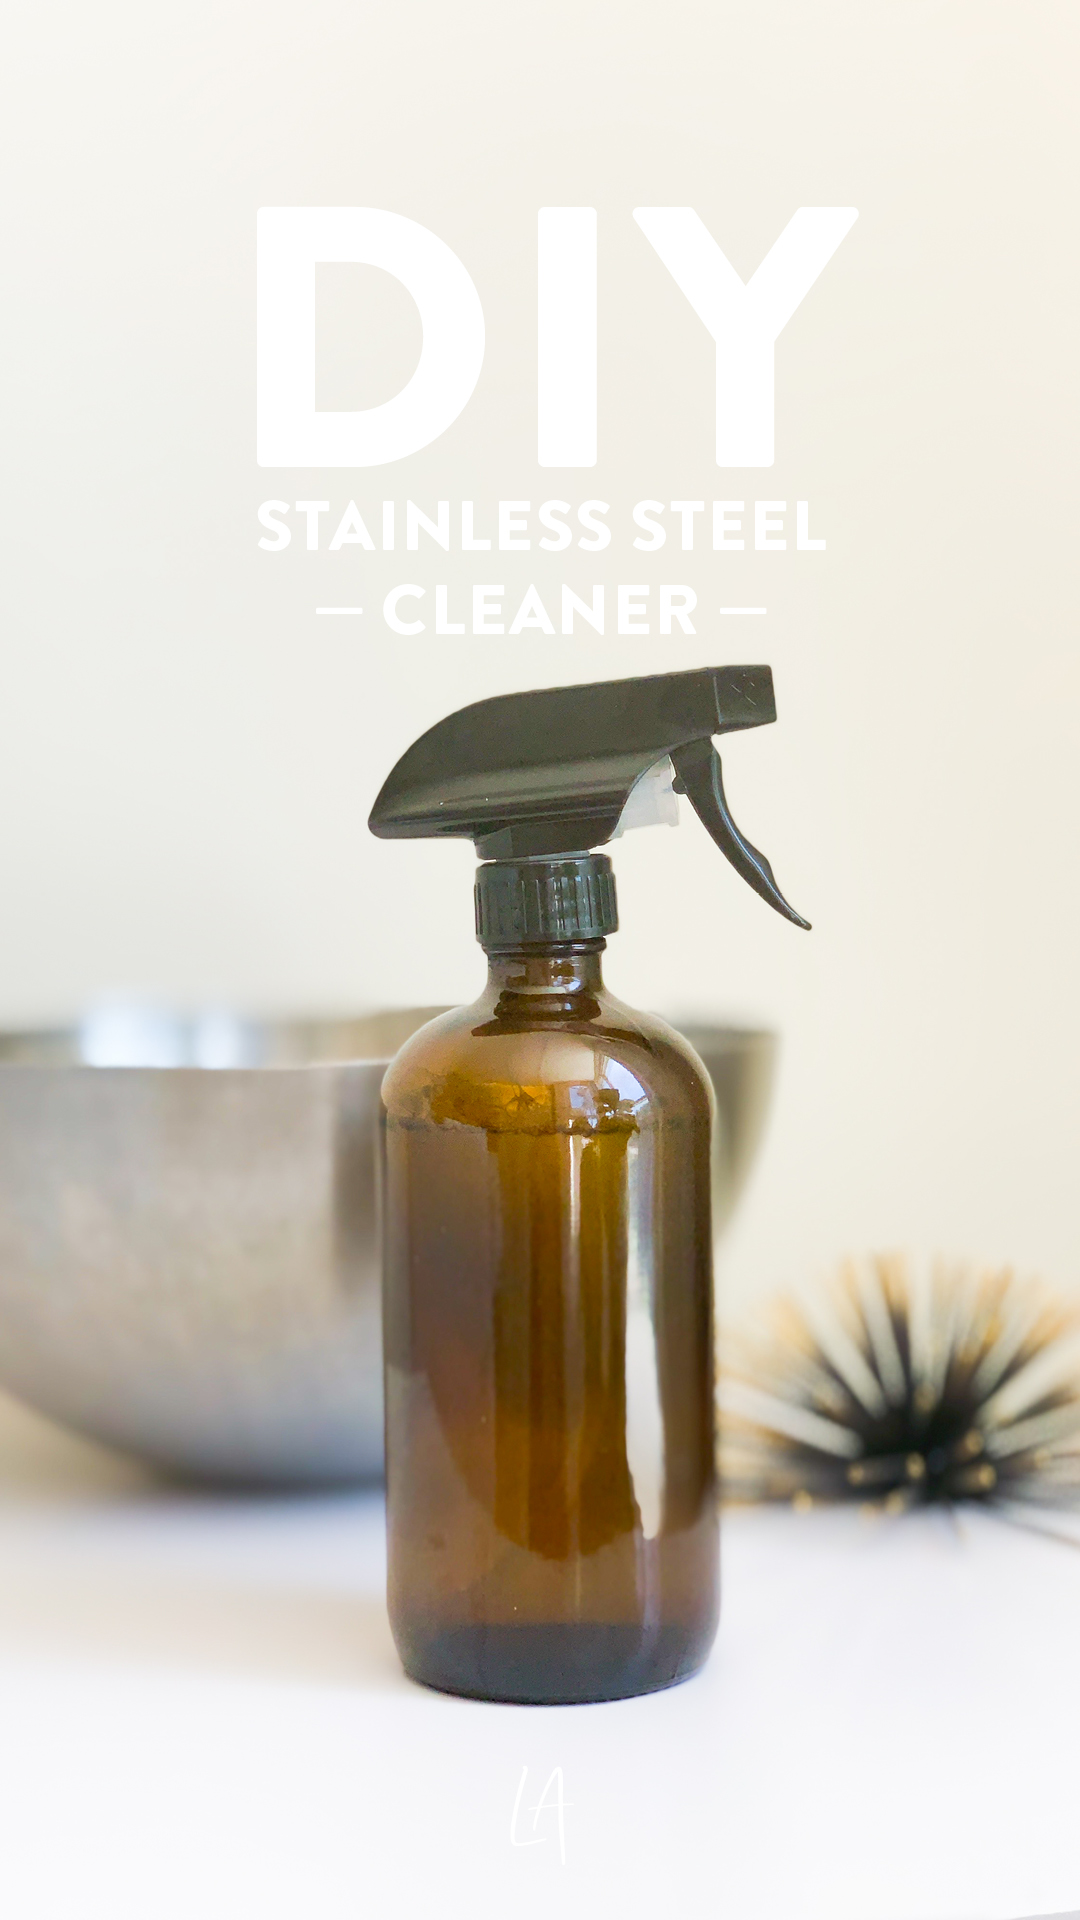 Make your own stainless steel cleaner